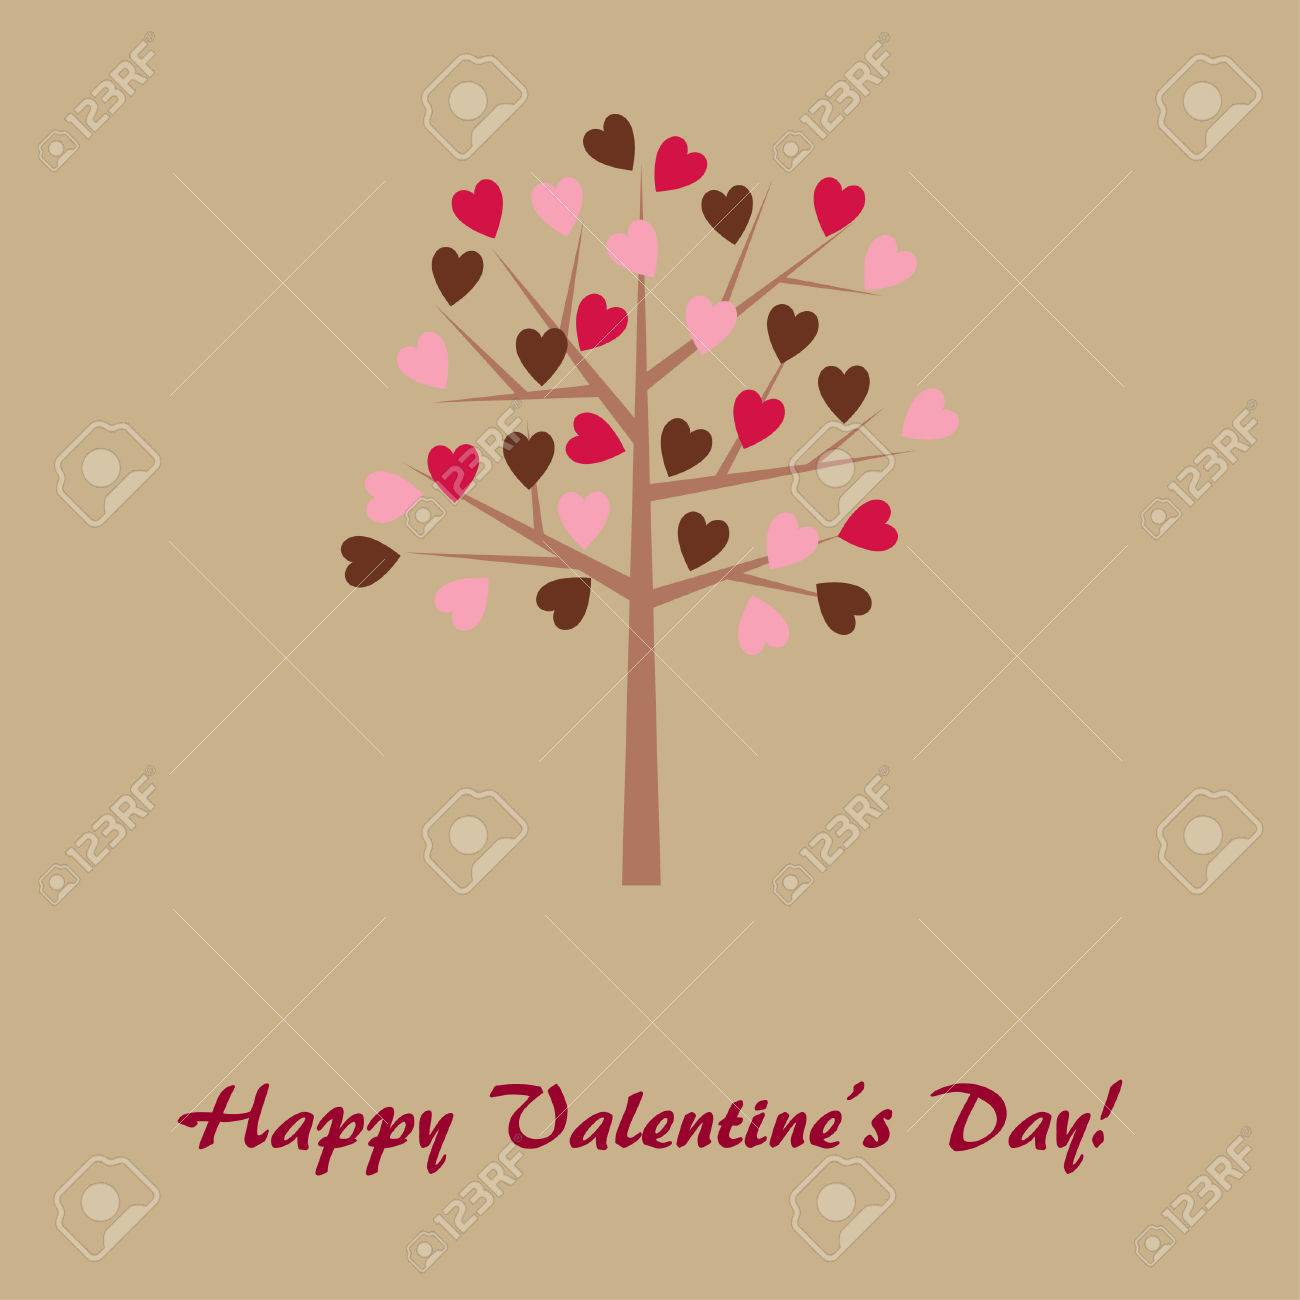 Valentine's Day card Stock Vector - 8778321